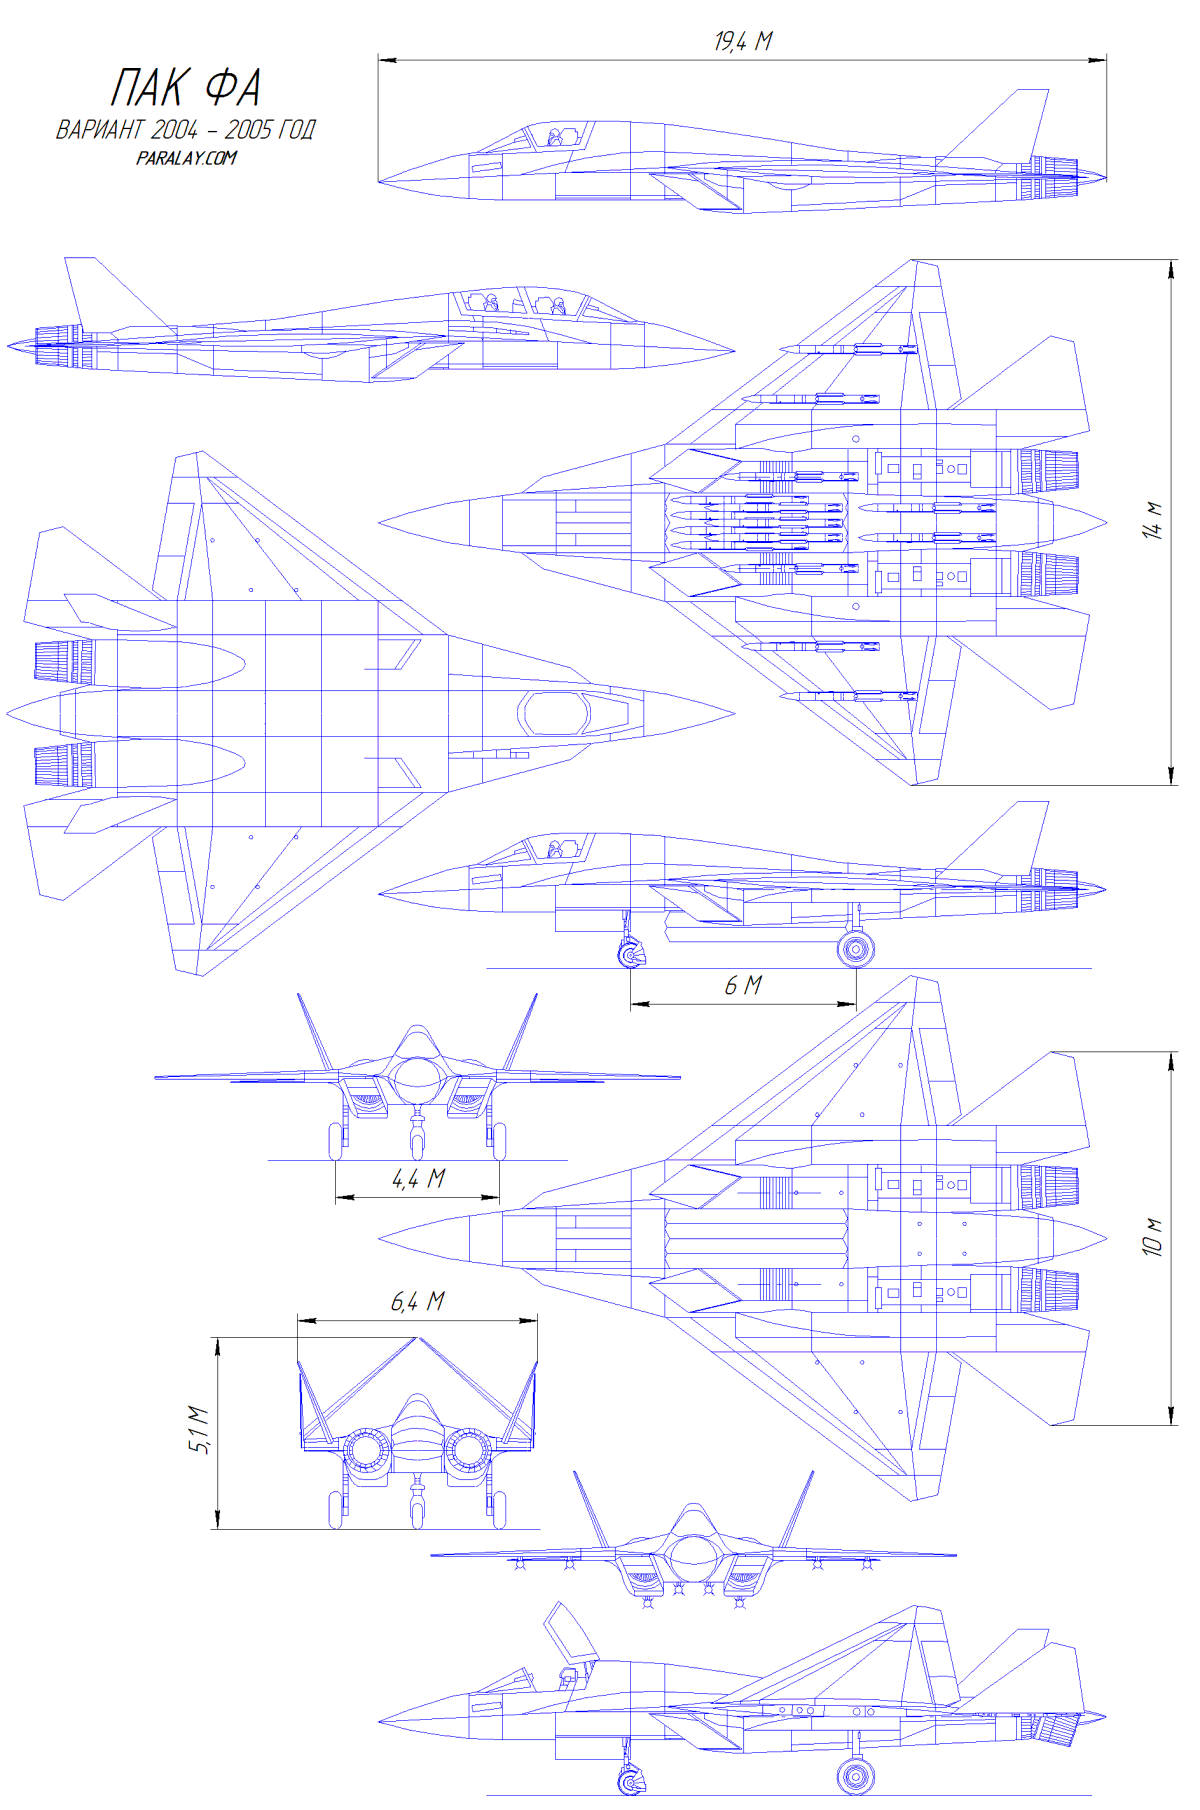 Image result for soviet pak fa advanced fighter jet blueprints image result for soviet pak fa advanced fighter jet blueprints malvernweather Image collections